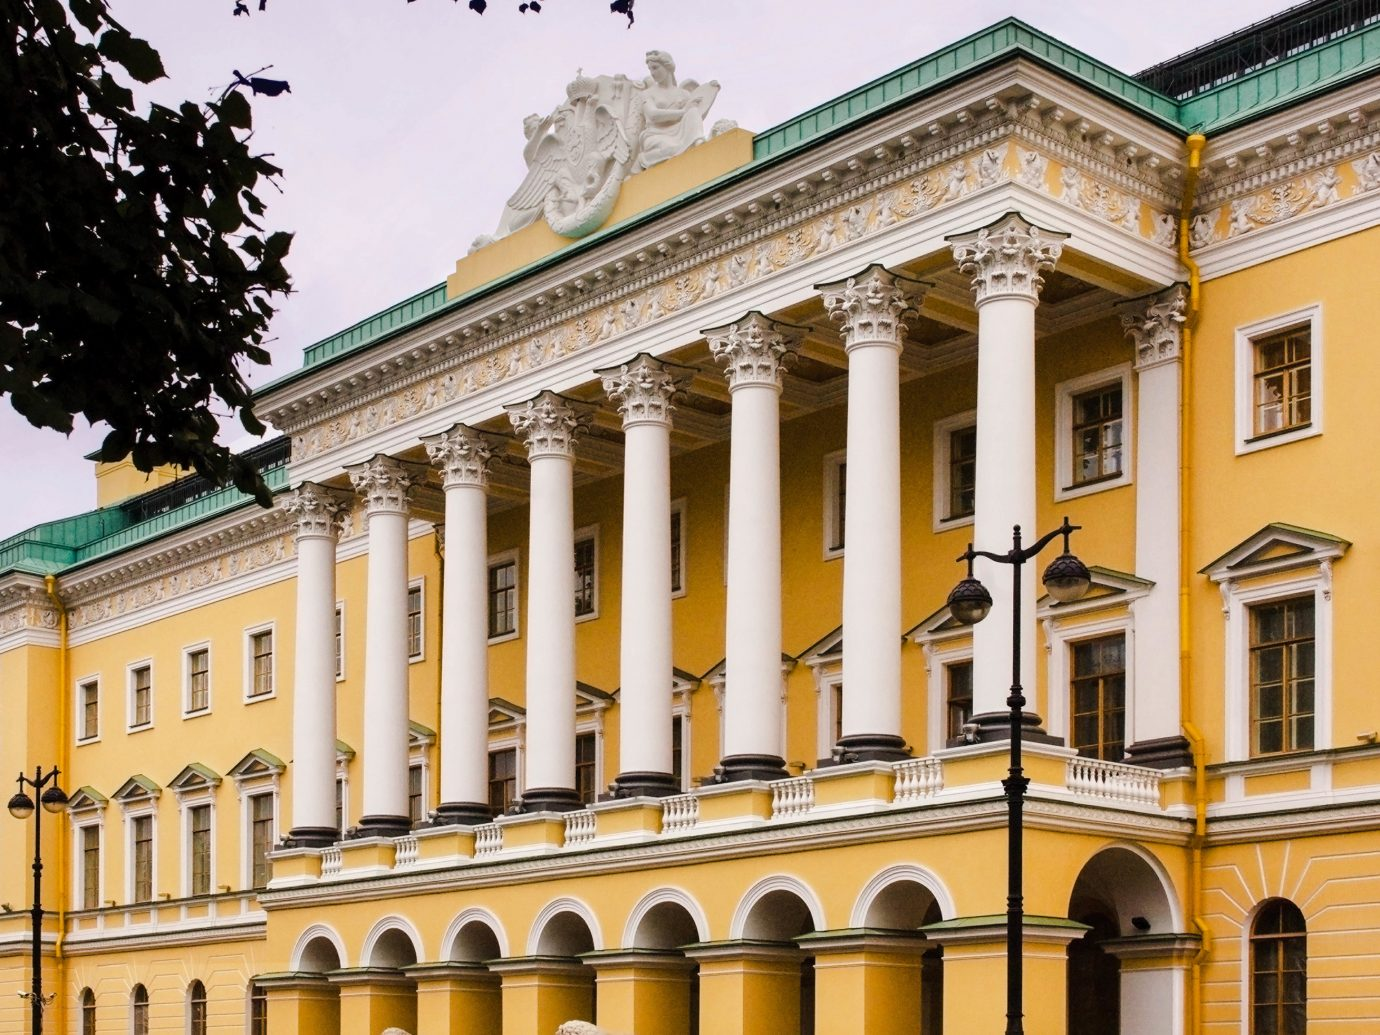 Hotels Luxury Travel outdoor classical architecture landmark building column Architecture structure yellow facade palace château window daytime mansion estate stately home house real estate government building ancient roman architecture historic site symmetry arch arcade historic house stone colonnade